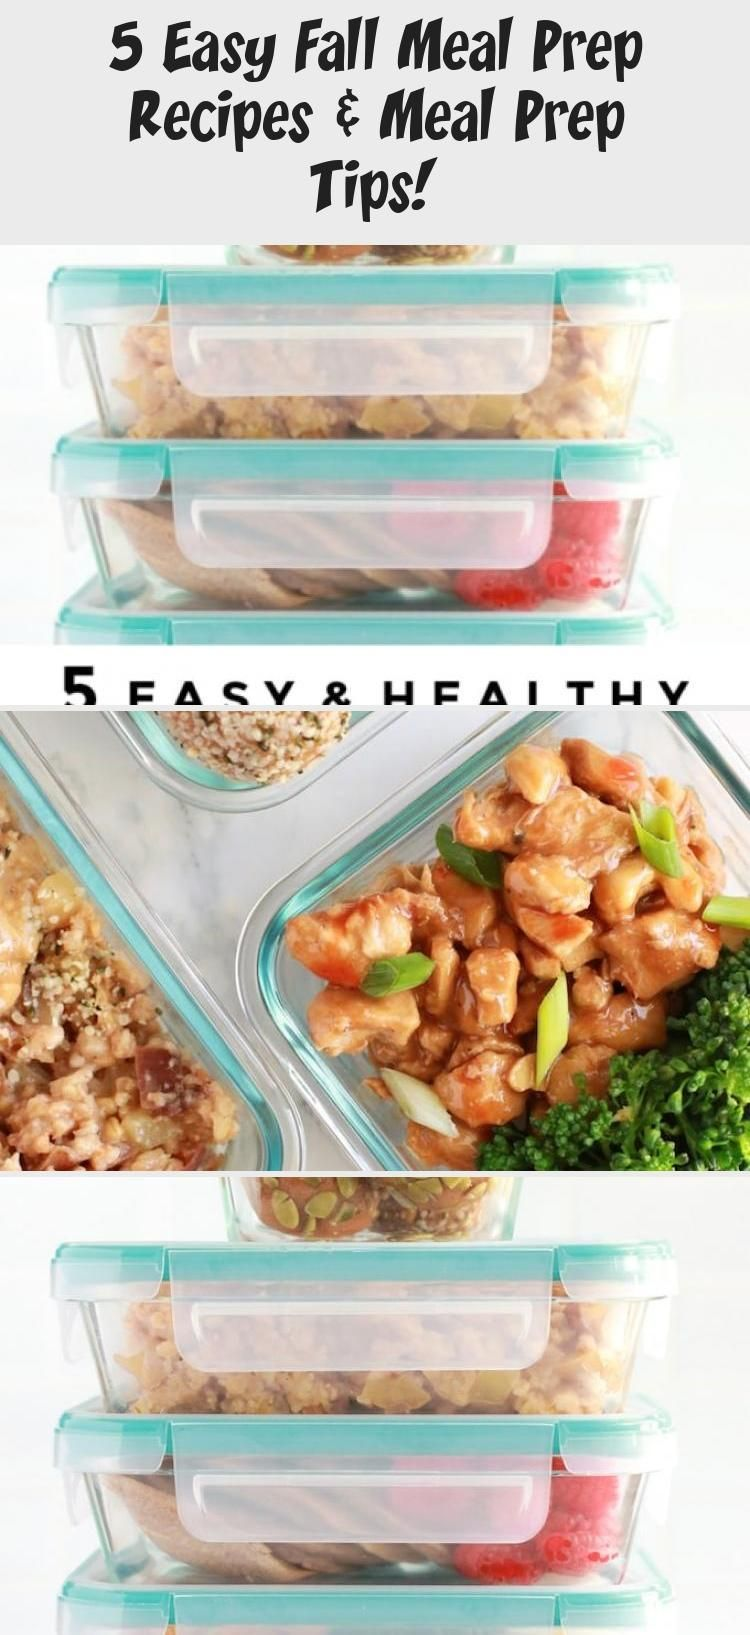 5 Easy Fall Meal Prep Recipes Healthy For Beginners Gluten Free Dairy Free tritioninth Every meal is important for nutrition but lunch It is more valuable for those who a...